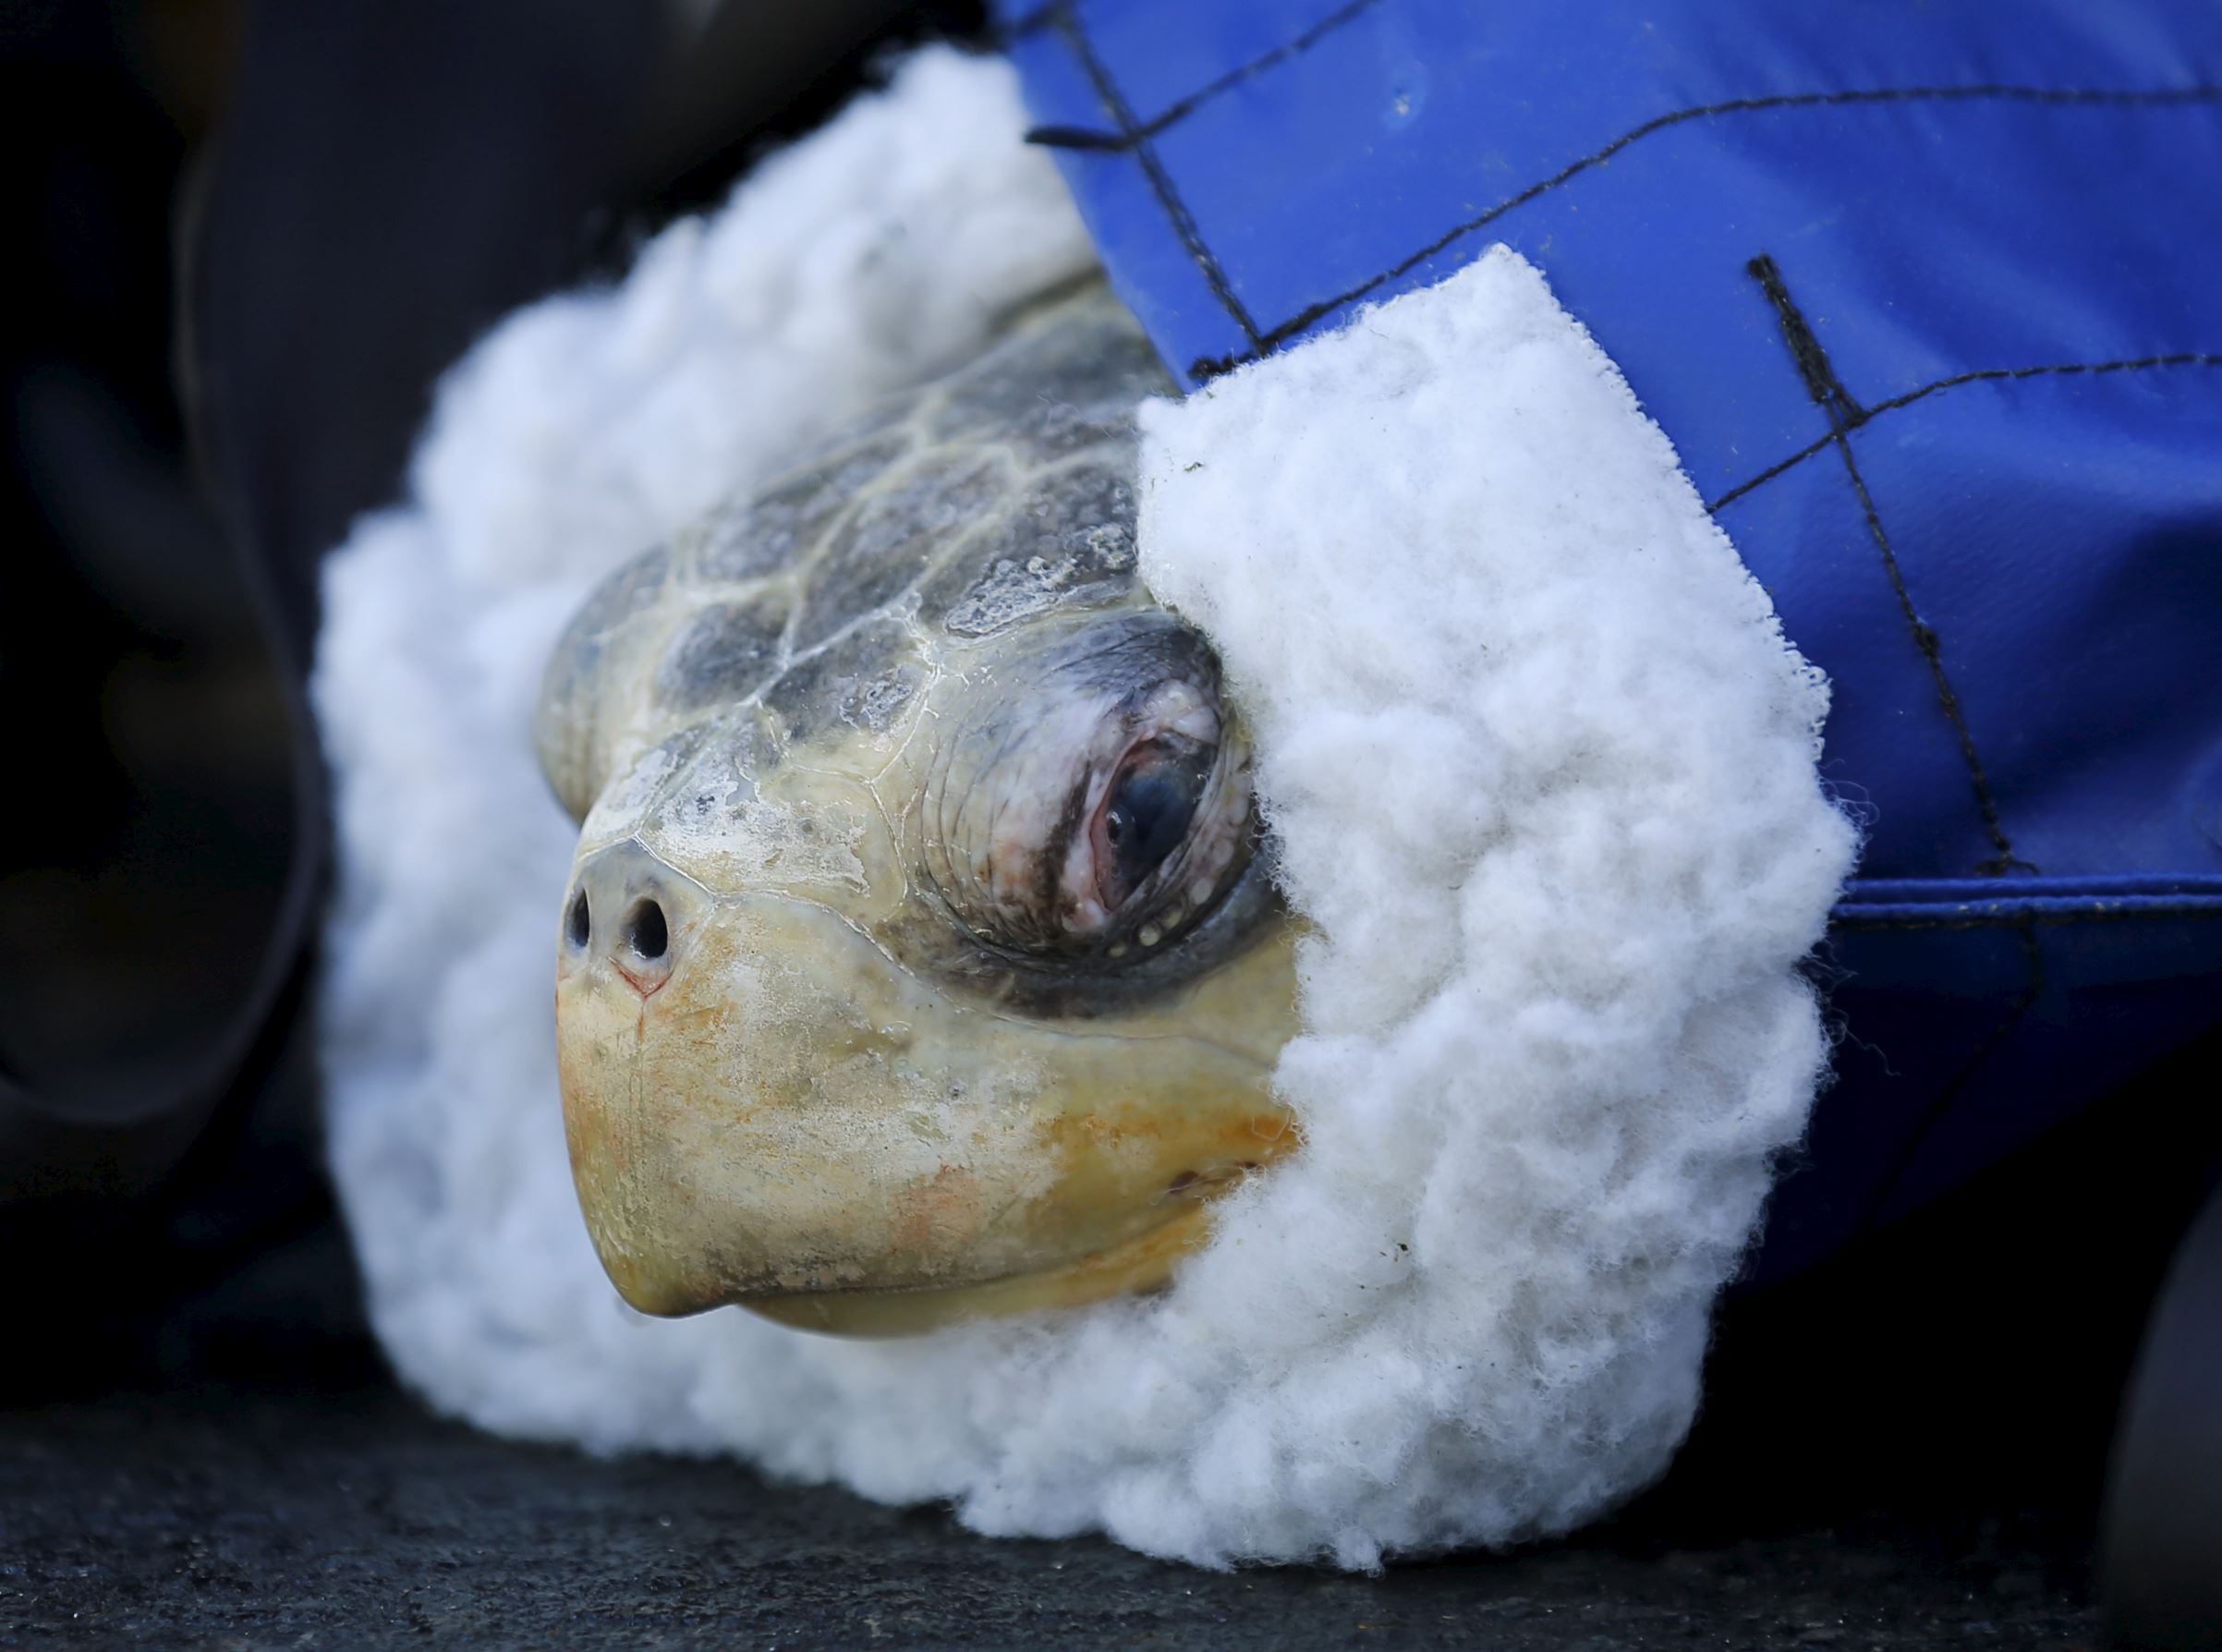 Слайд 52 из 67: One of two rescued endangered olive ridley turtles arrives at Sea World's animal rescue center after being flown from the Oregon coast by the U.S. Coast Guard to San Diego, California March 30, 2016.